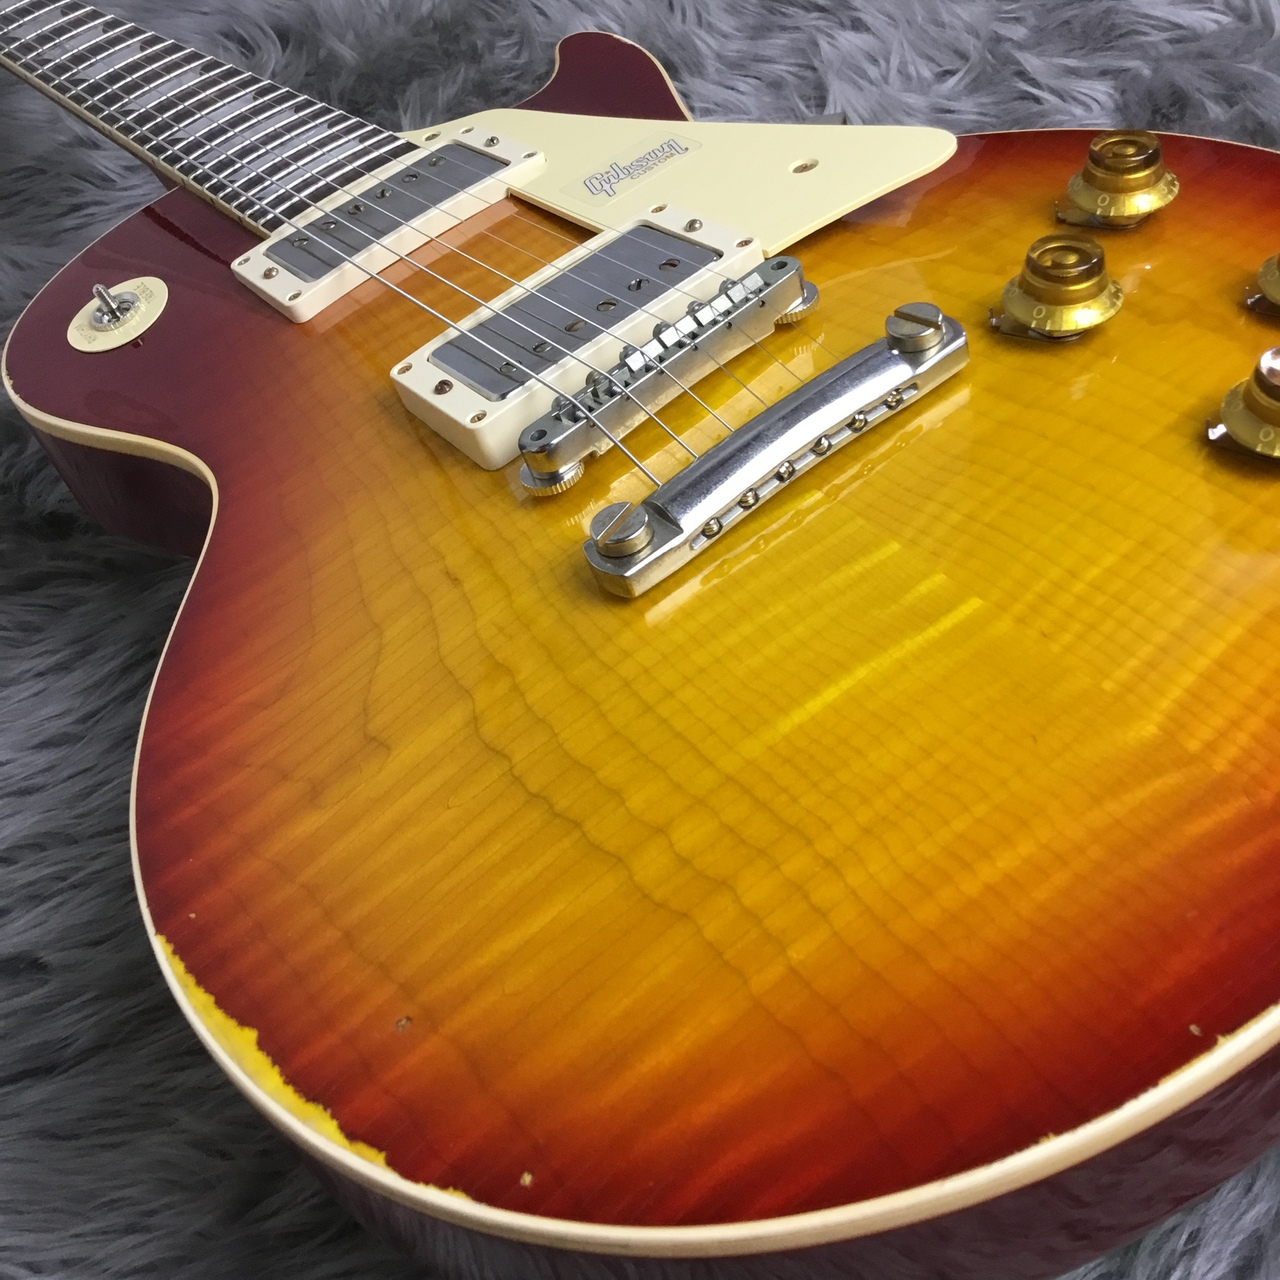 1958 Les Paul Standard Hard Rock Maple Top Crimson Burst Lightly Agedのケース・その他画像